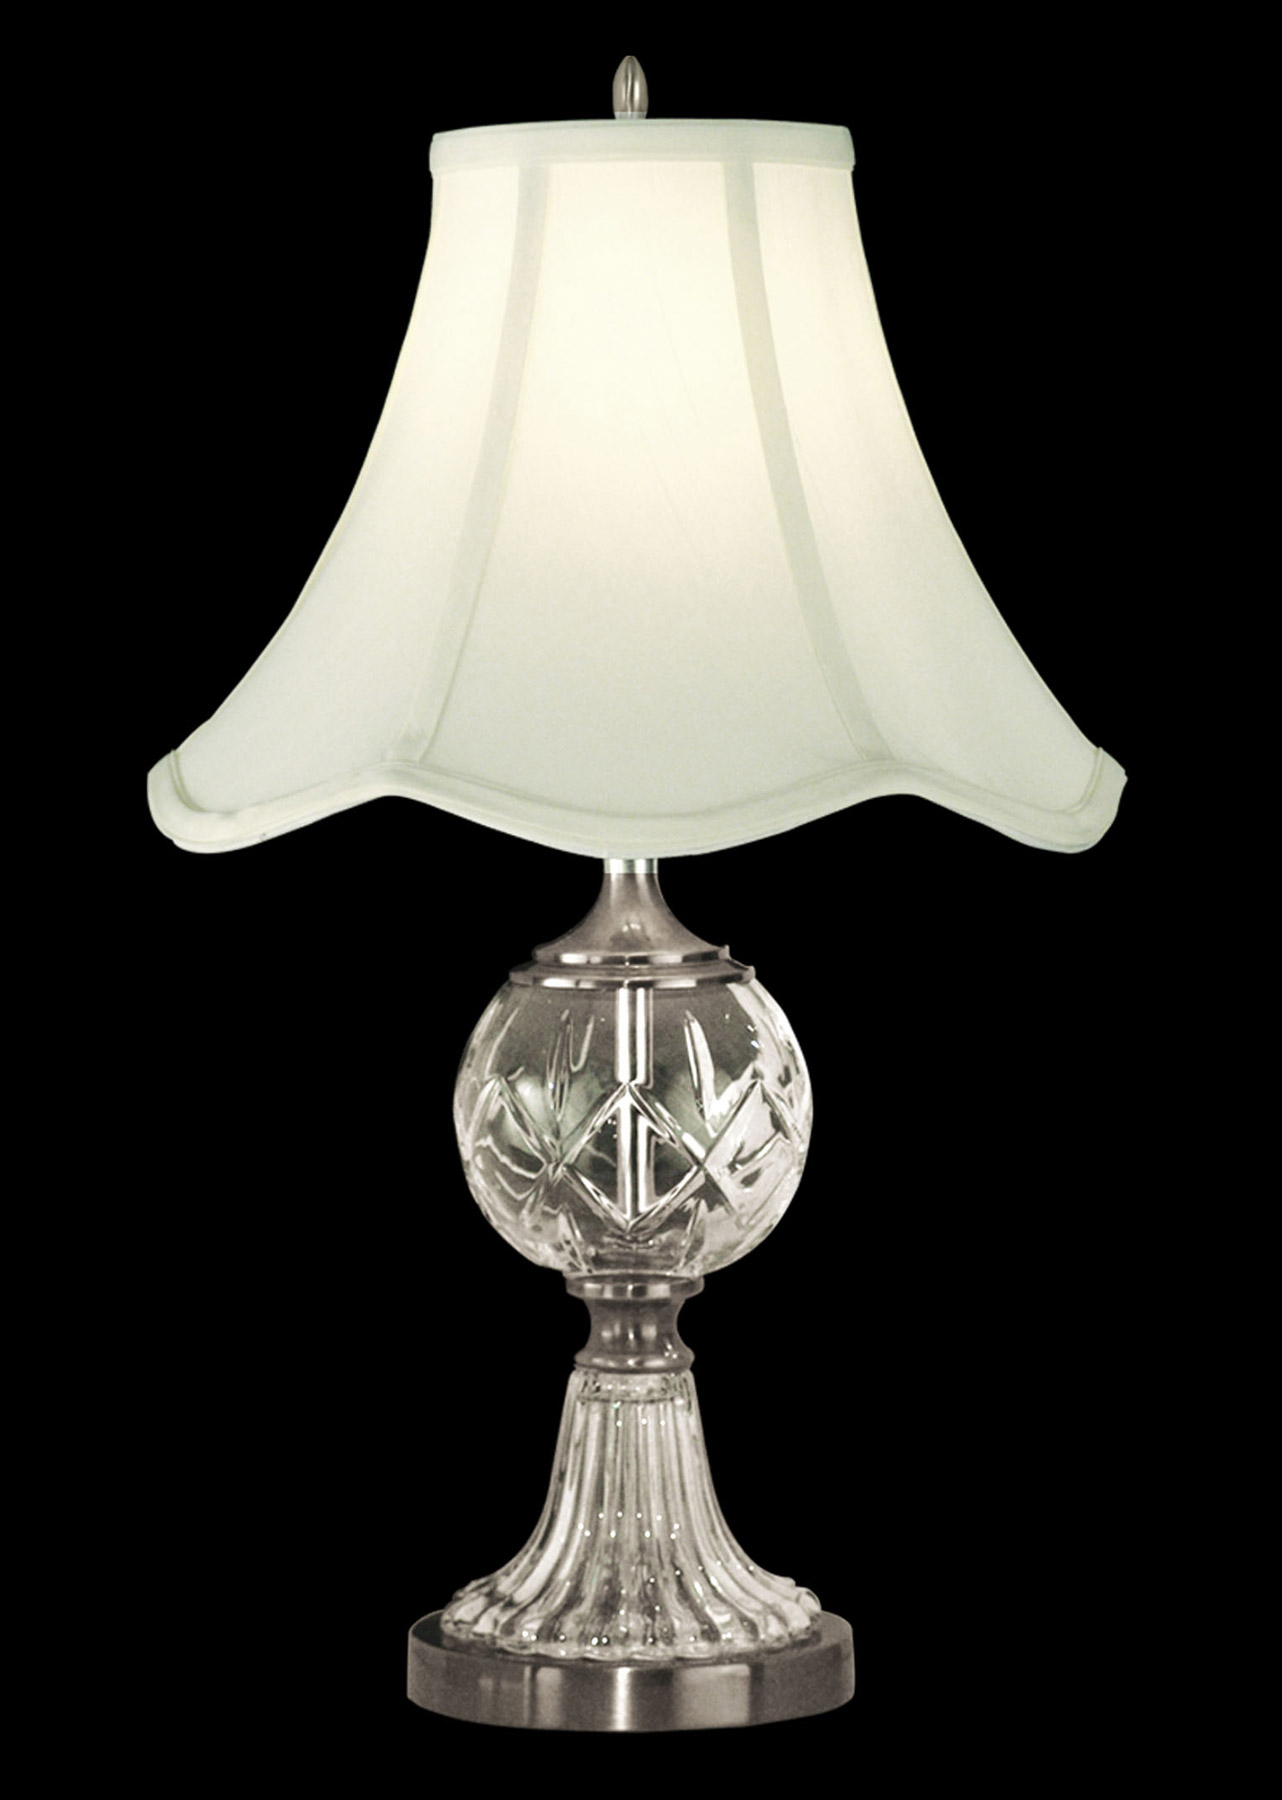 Dale Tiffany Gt10356 Crystal Table Lamp